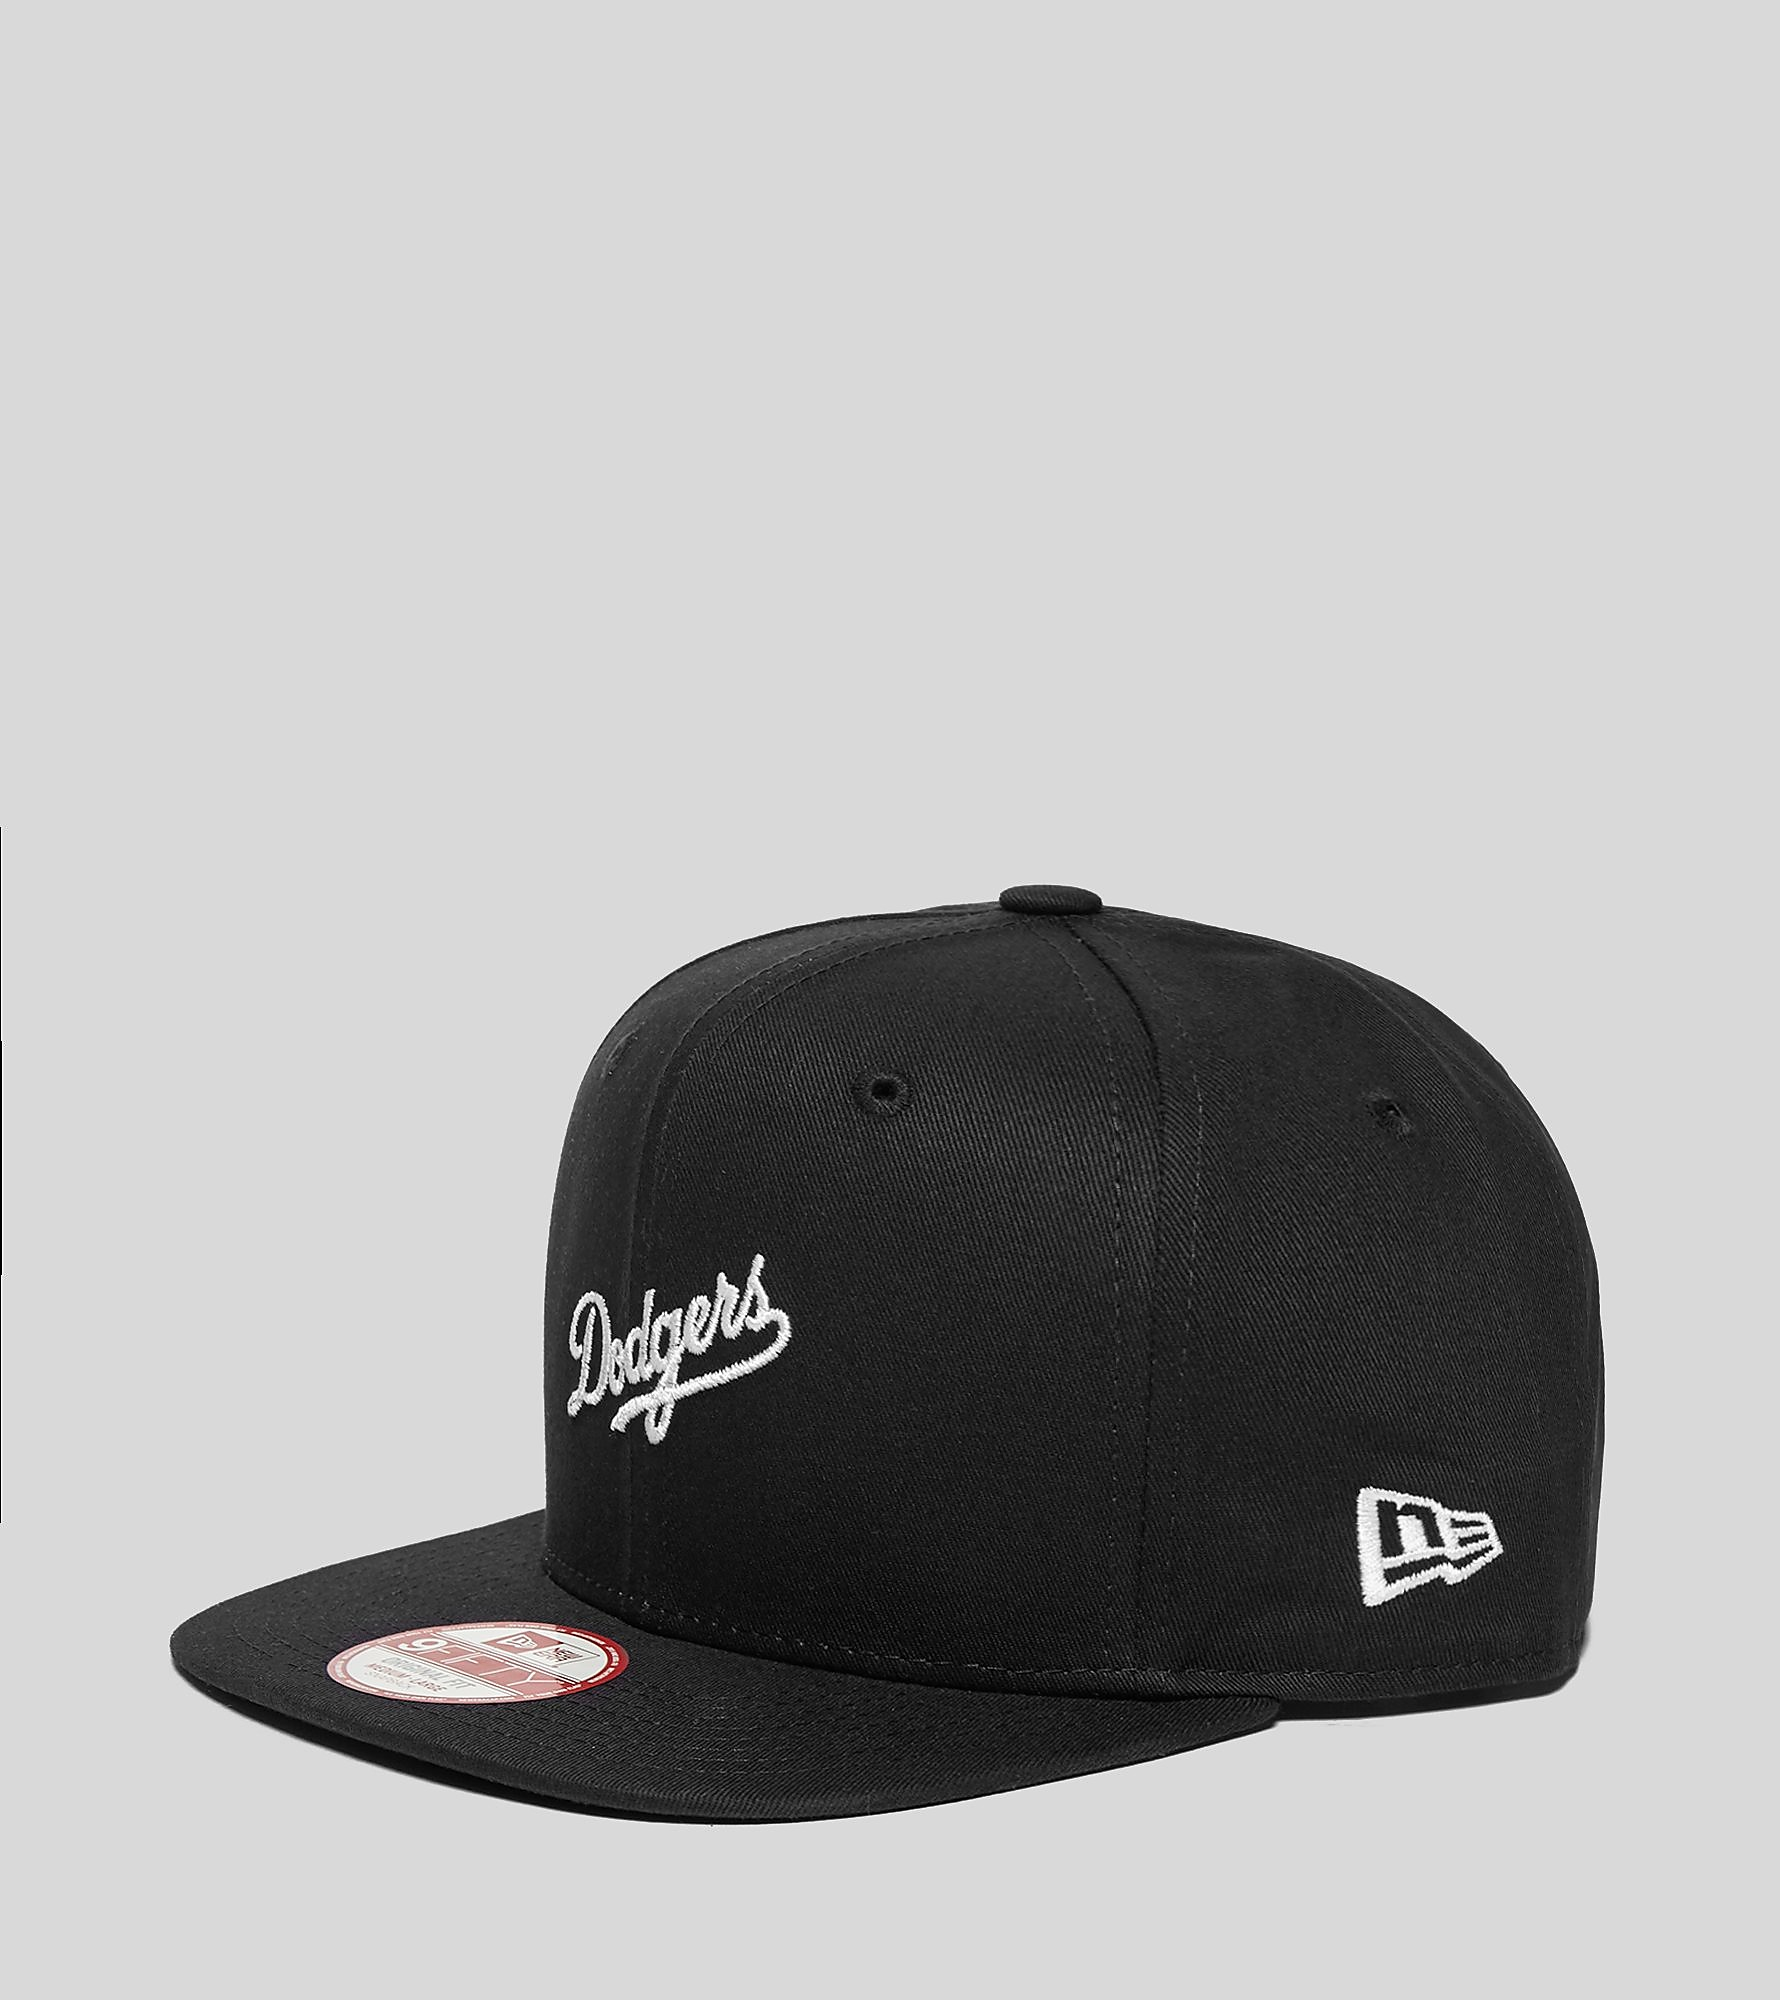 New Era 9FIFTY OG Snapback Cap - size? Exclusive